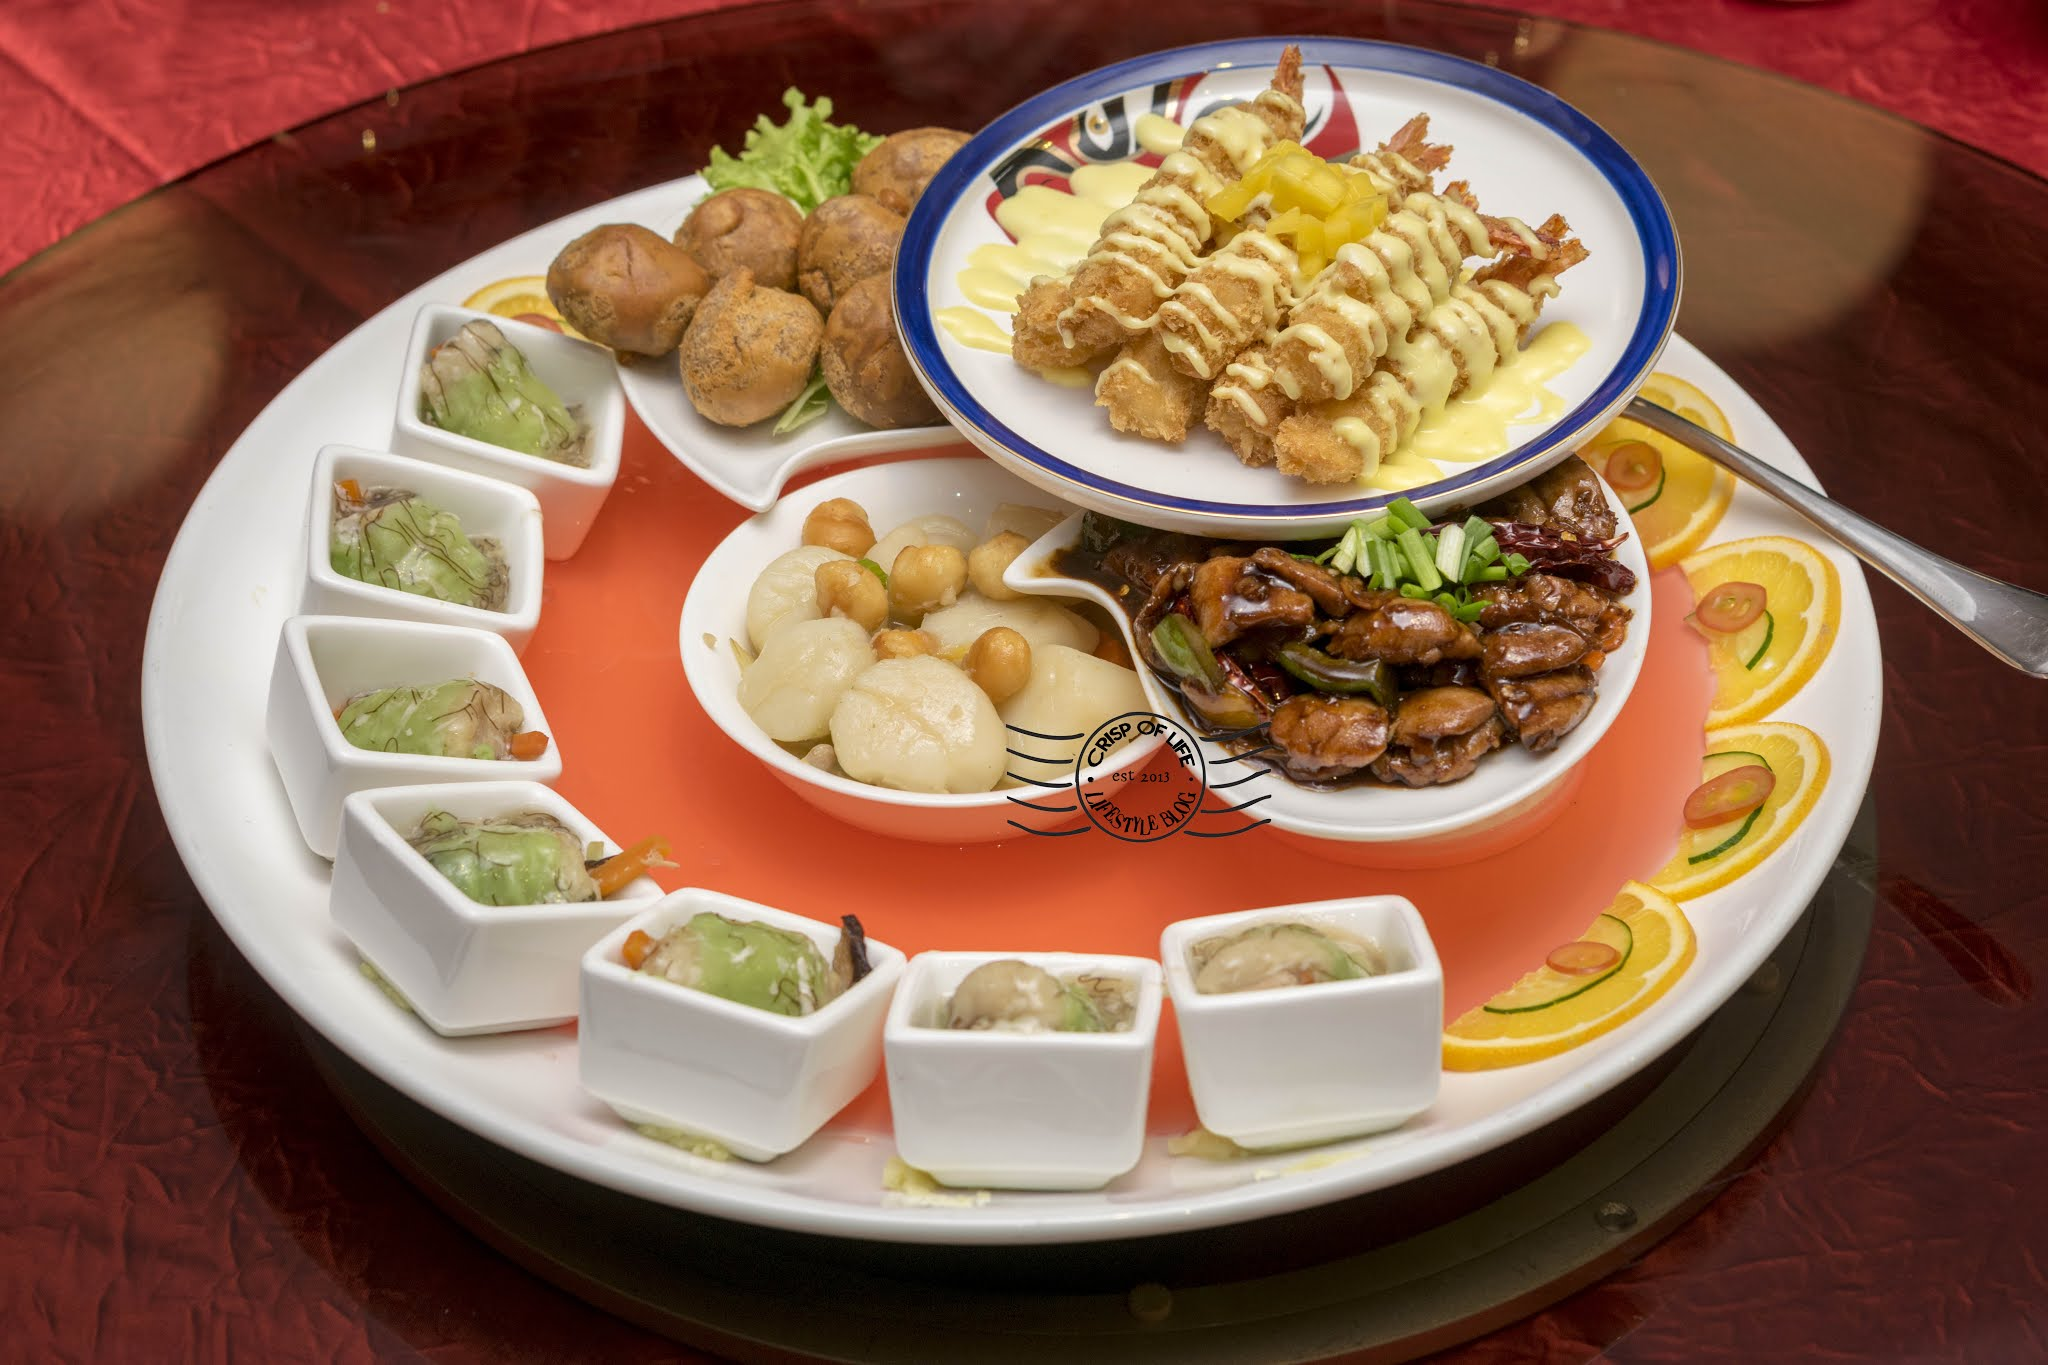 Ixora Hotel Prosperity 8 Course Chinese New Year 2021 Menu - Available for Takeaways Too!